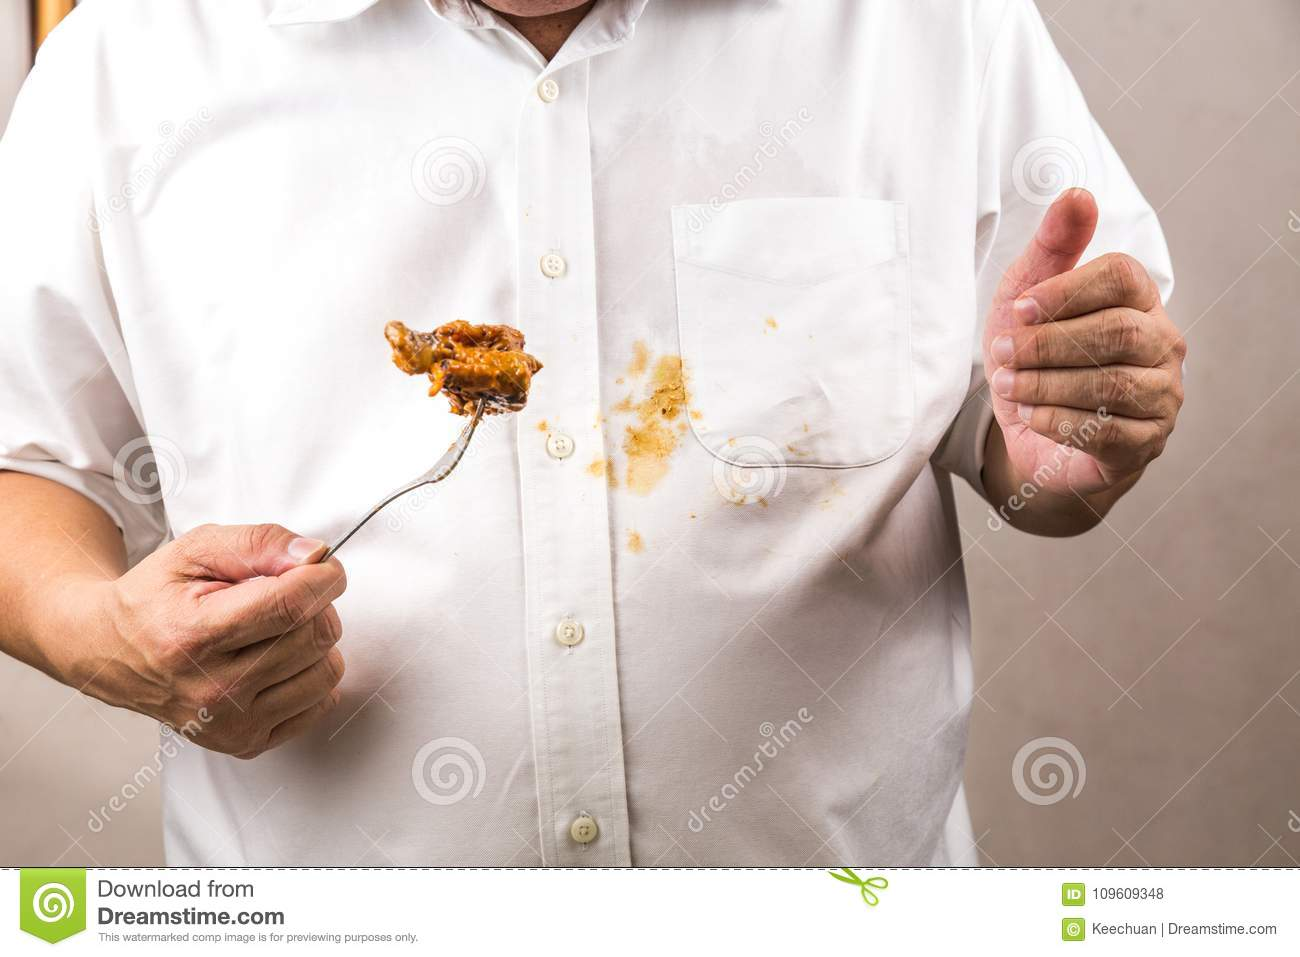 Person accidently spilled curry stain onto white shirt.